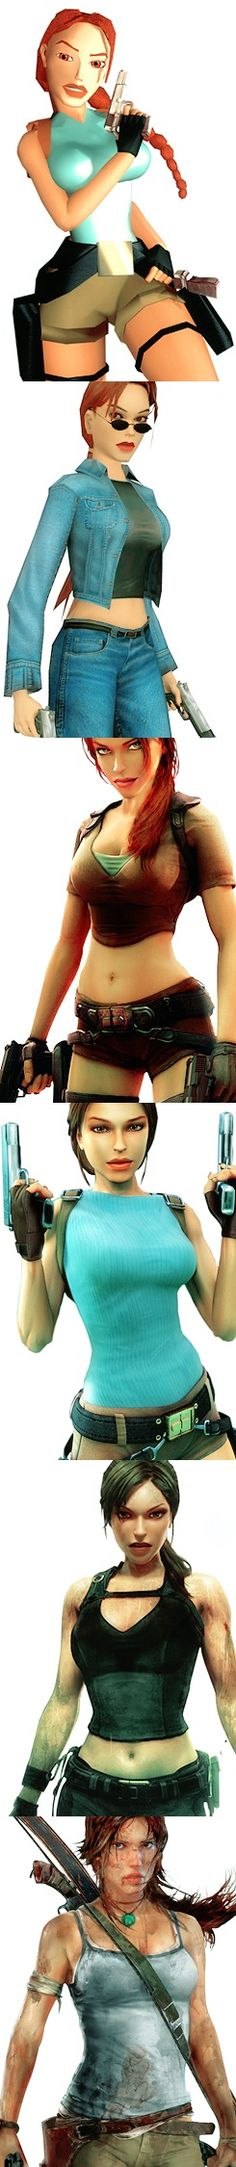 The Evolution of Lara Croft from Tomb Raider